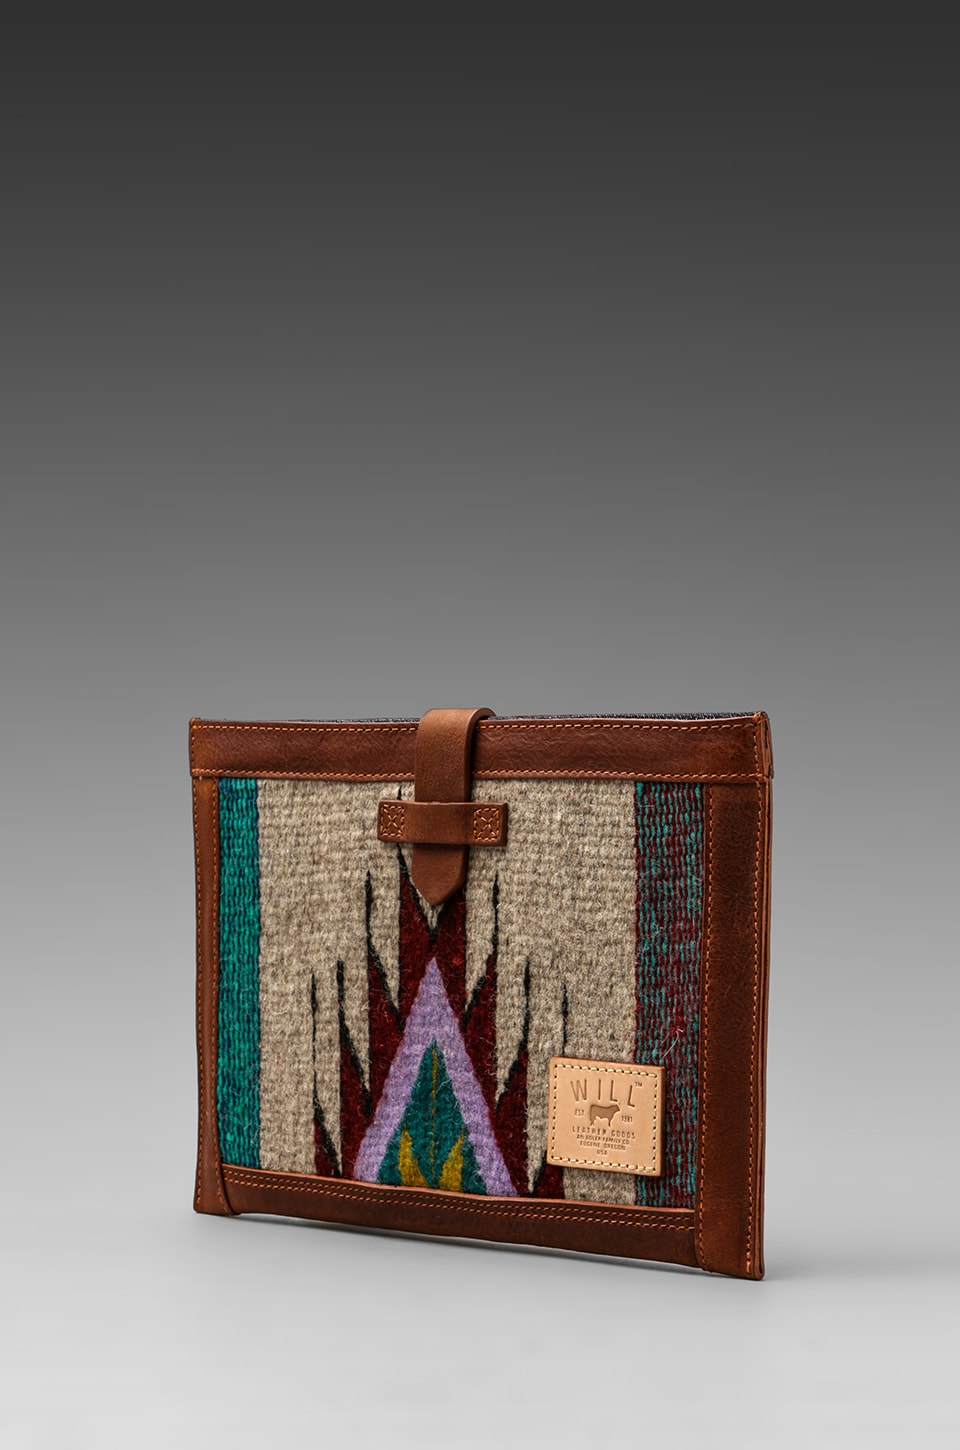 WILL Leather Goods Oaxacan iPad Sleeve in Cognac